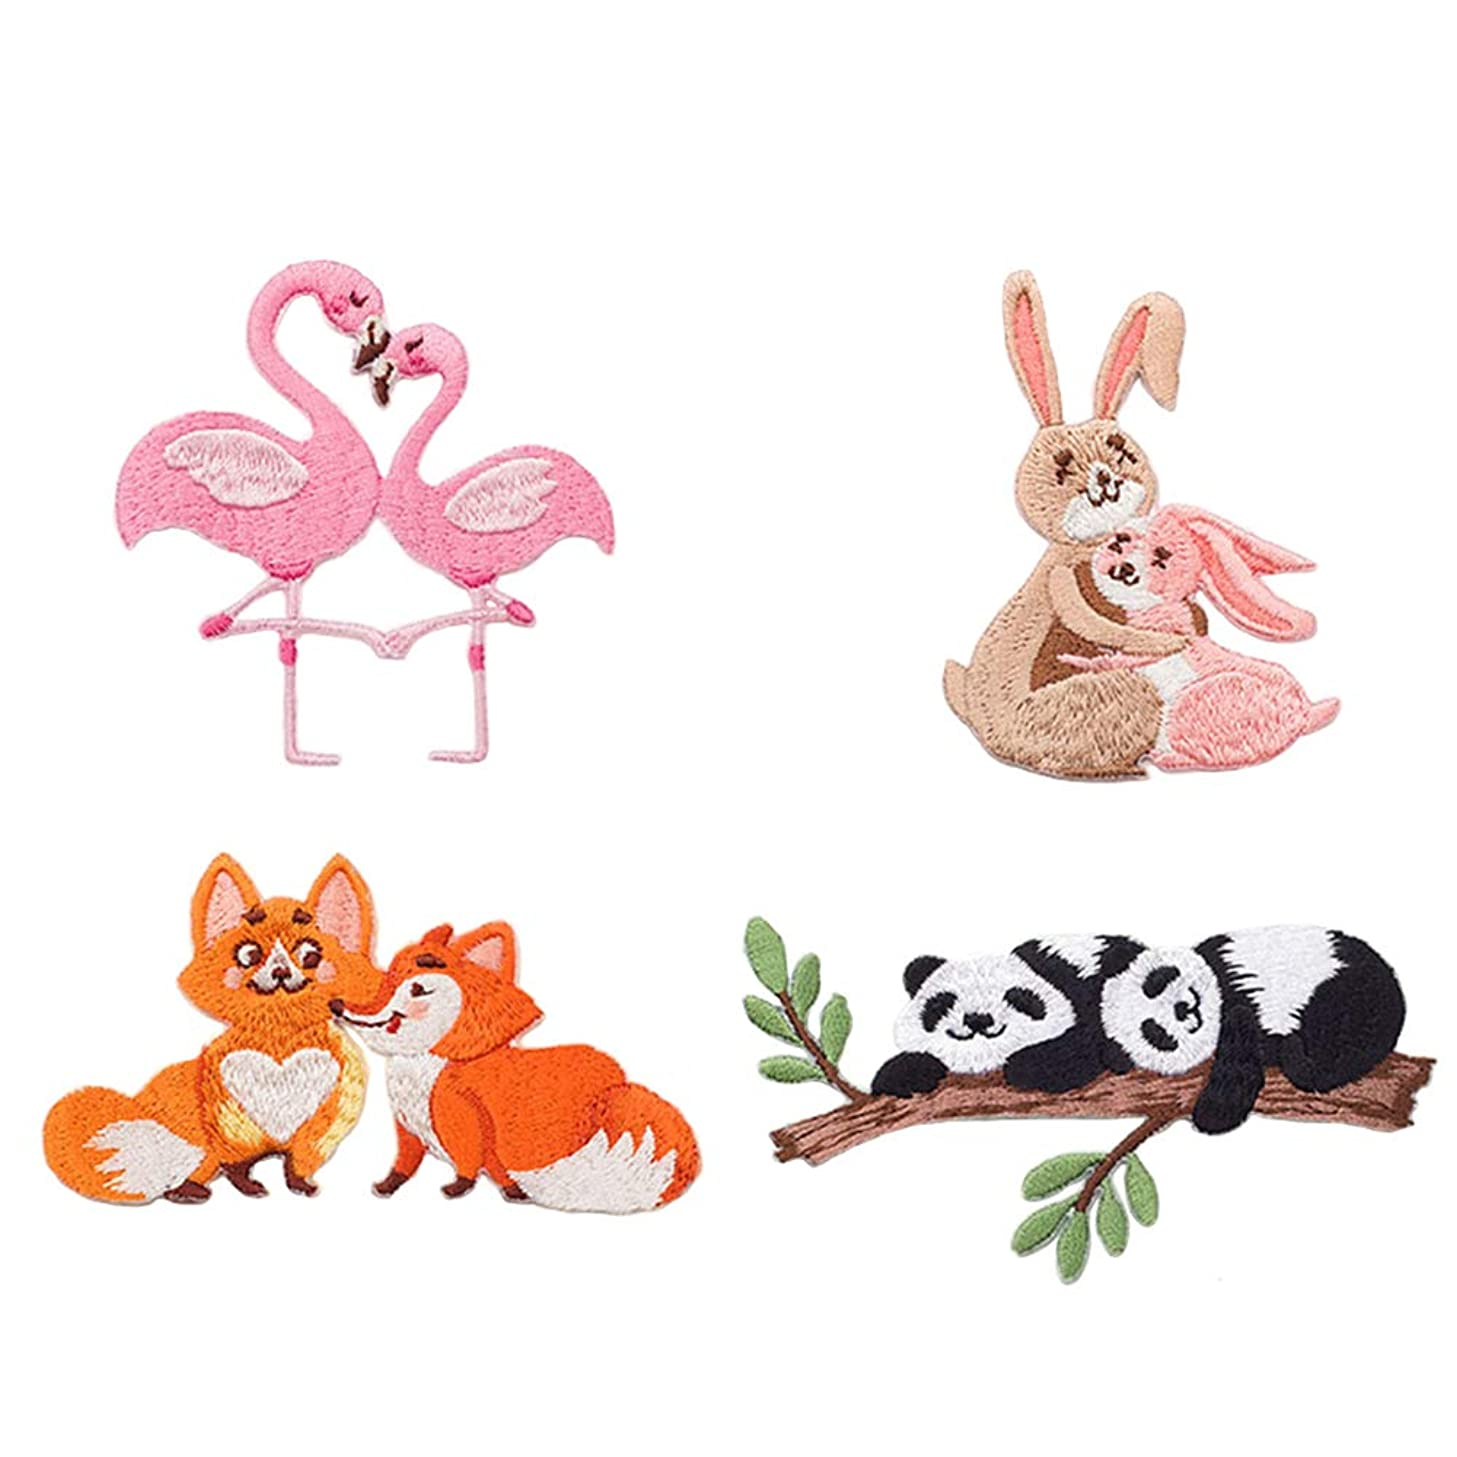 4 Pcs Cute Animals Delicate Embroidered Patches, Embroidery Patches, Iron On Patches, Sew On Applique Patch,Cool Patches for Men, Women, Boys, Girls, Kids